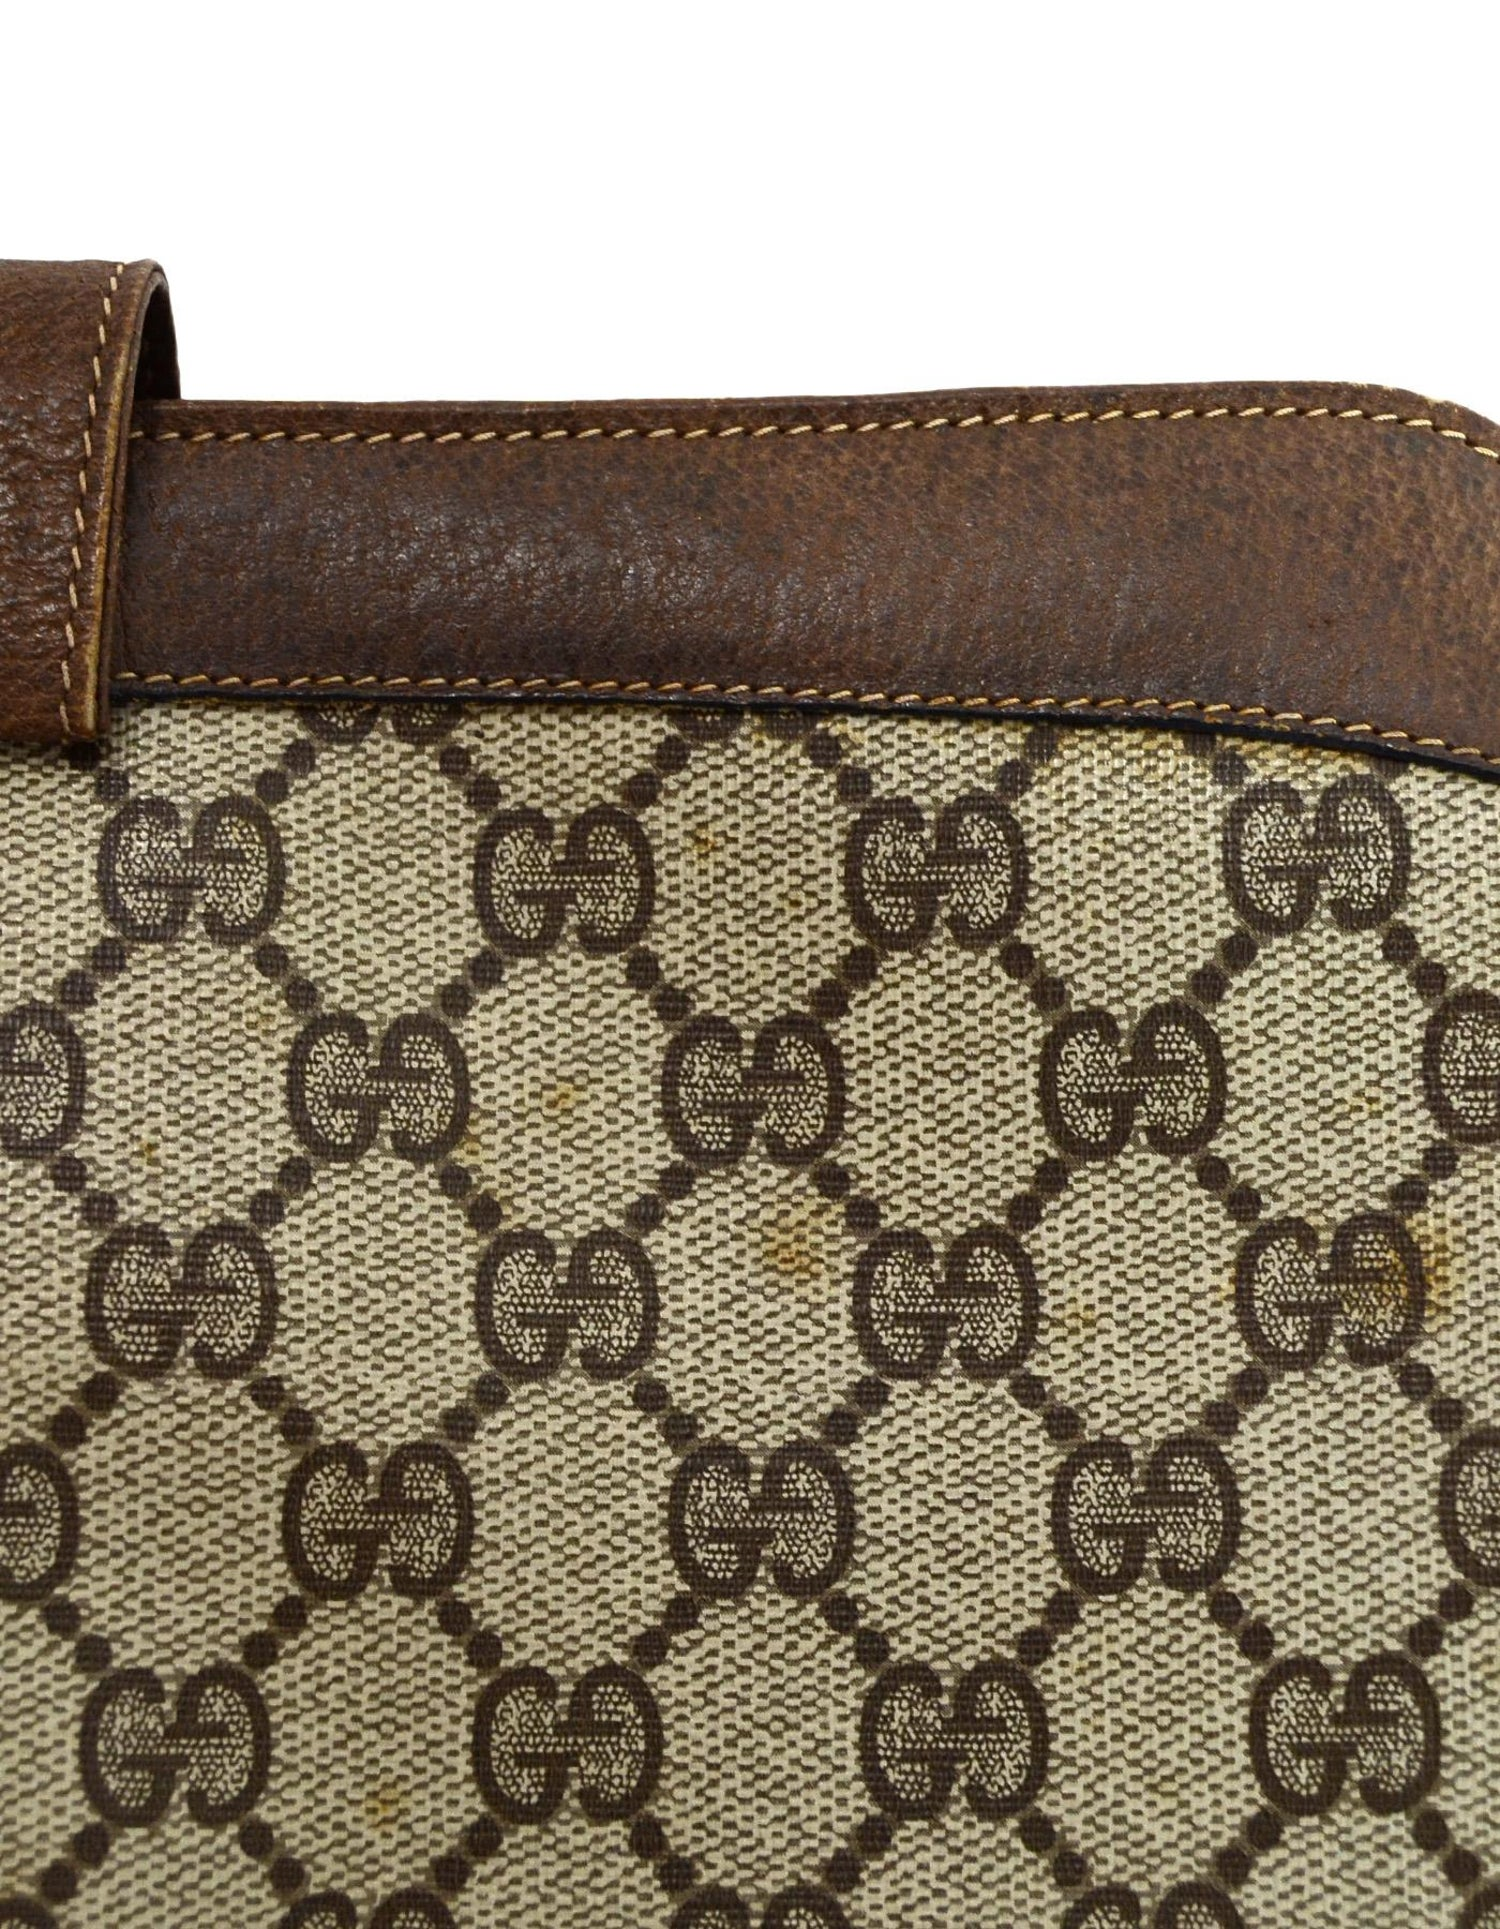 505e79245226 Gucci Vintage Monogram Tan Coated Canvas/ Brown Leather GG Supreme  Crossbody Bag For Sale at 1stdibs